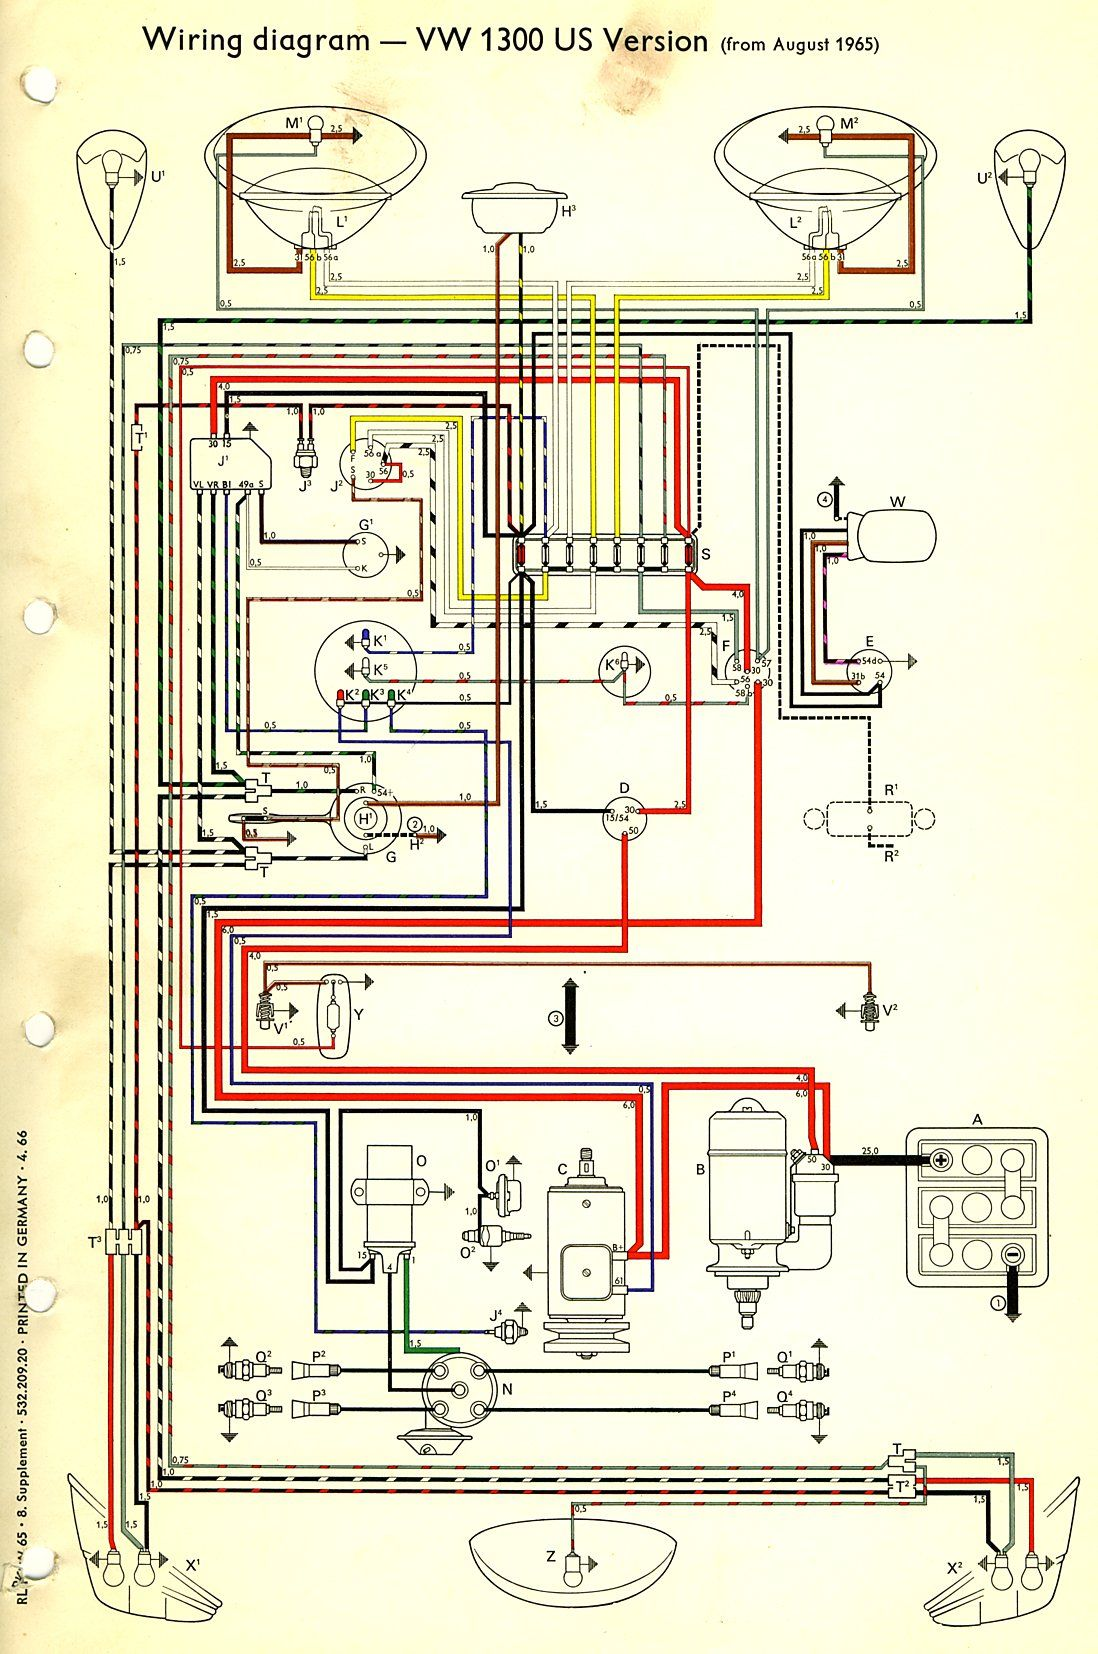 hight resolution of dune buggy wiring schematic google search 69 bug or 69 dune bad boy buggy wiring schematic pdf buggy wiring schematic